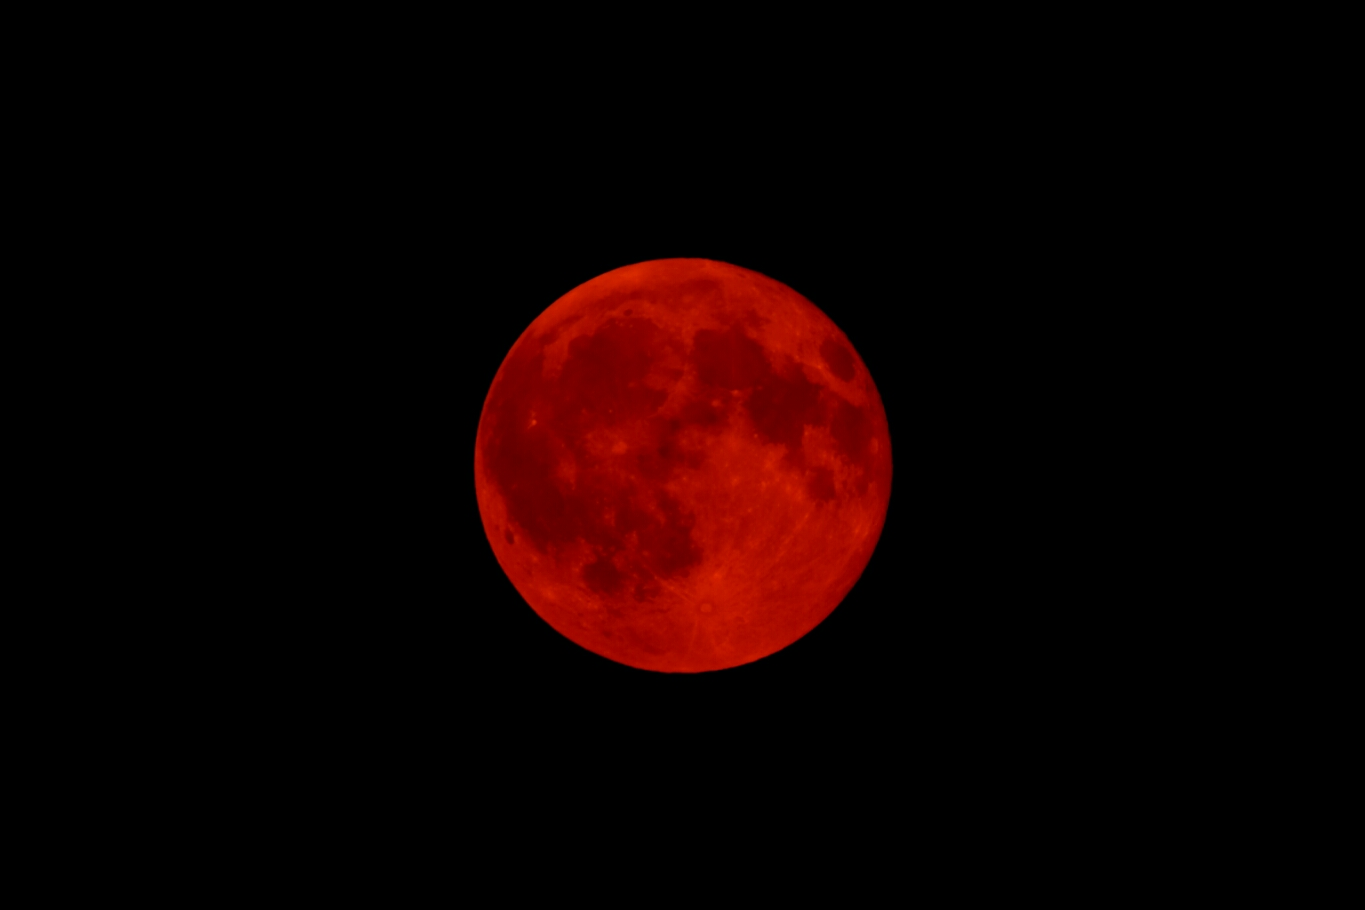 red moon vedano - photo #12